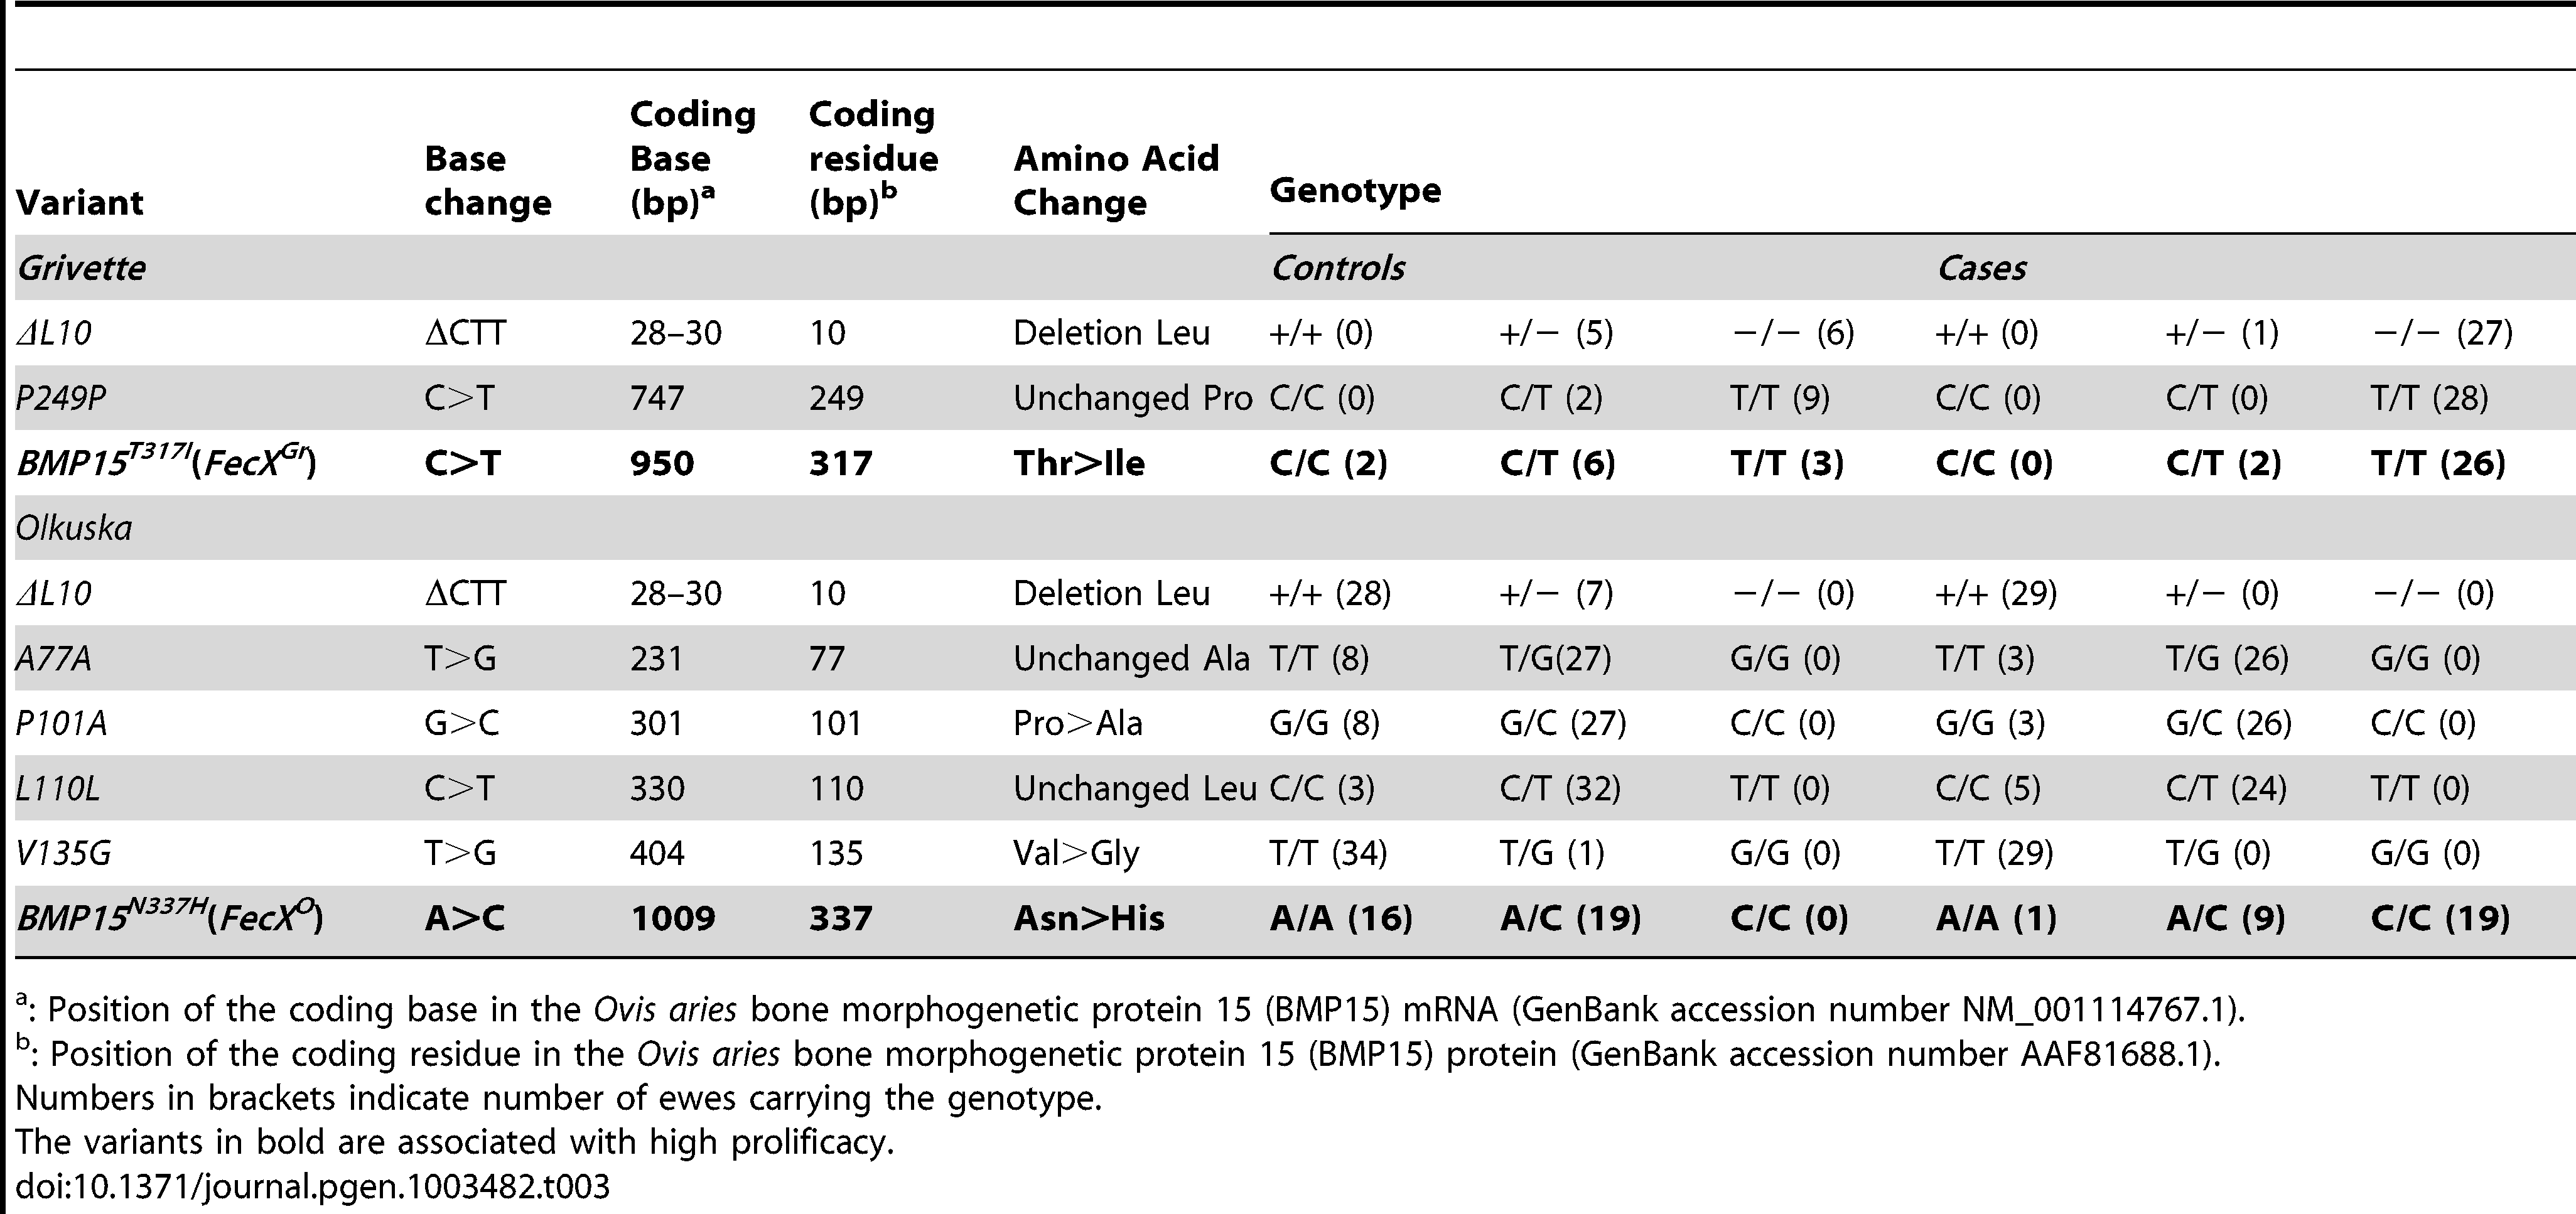 BMP15 genetic variants identified in the Grivette and the Olkuska populations.